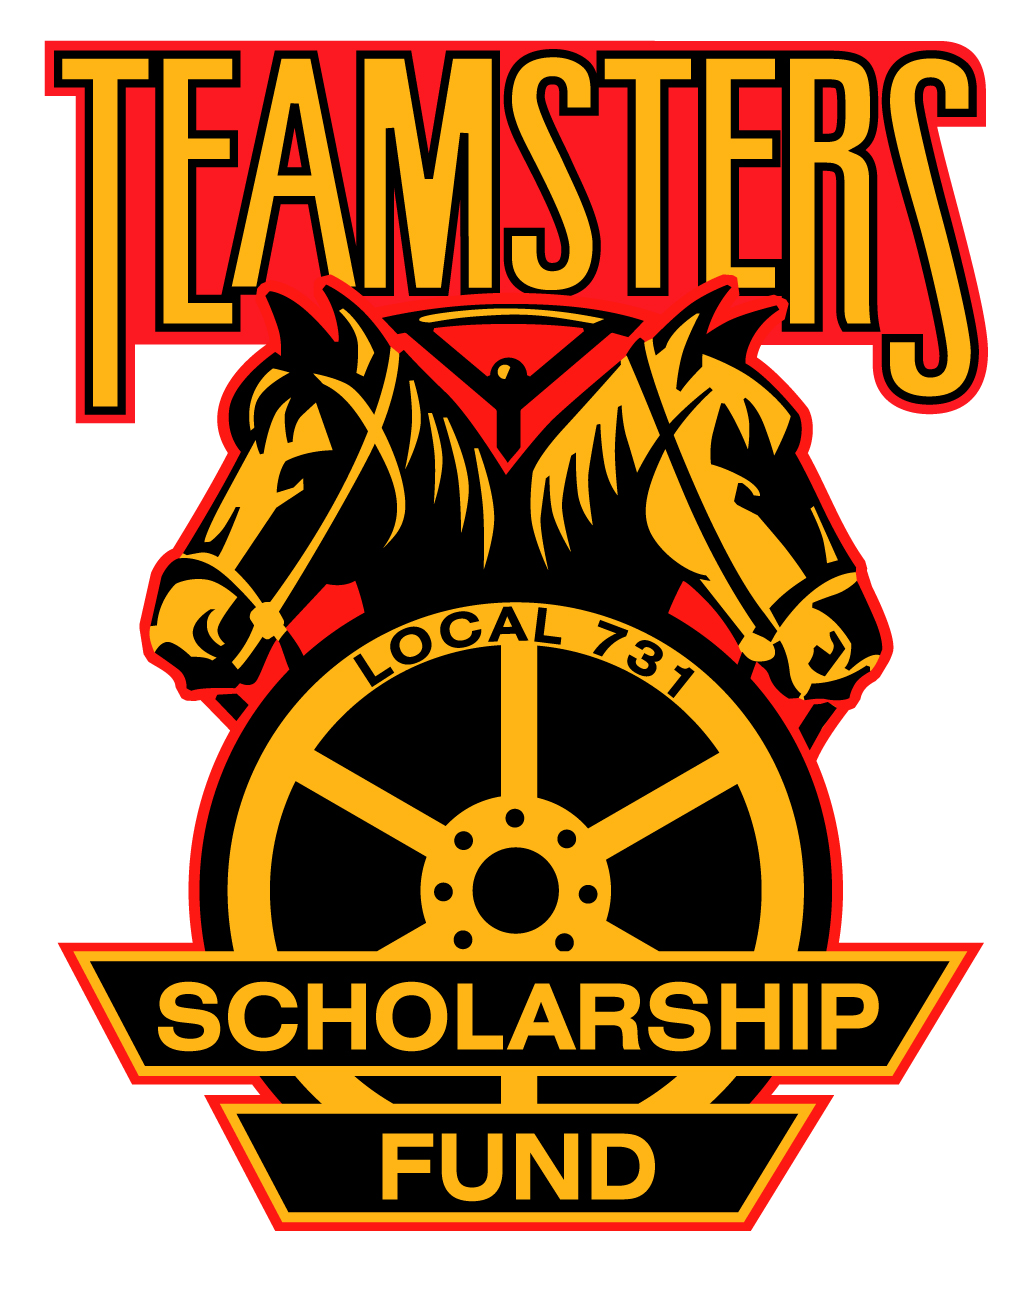 Teamsters Local 731 Health Welfare And Pension Fund